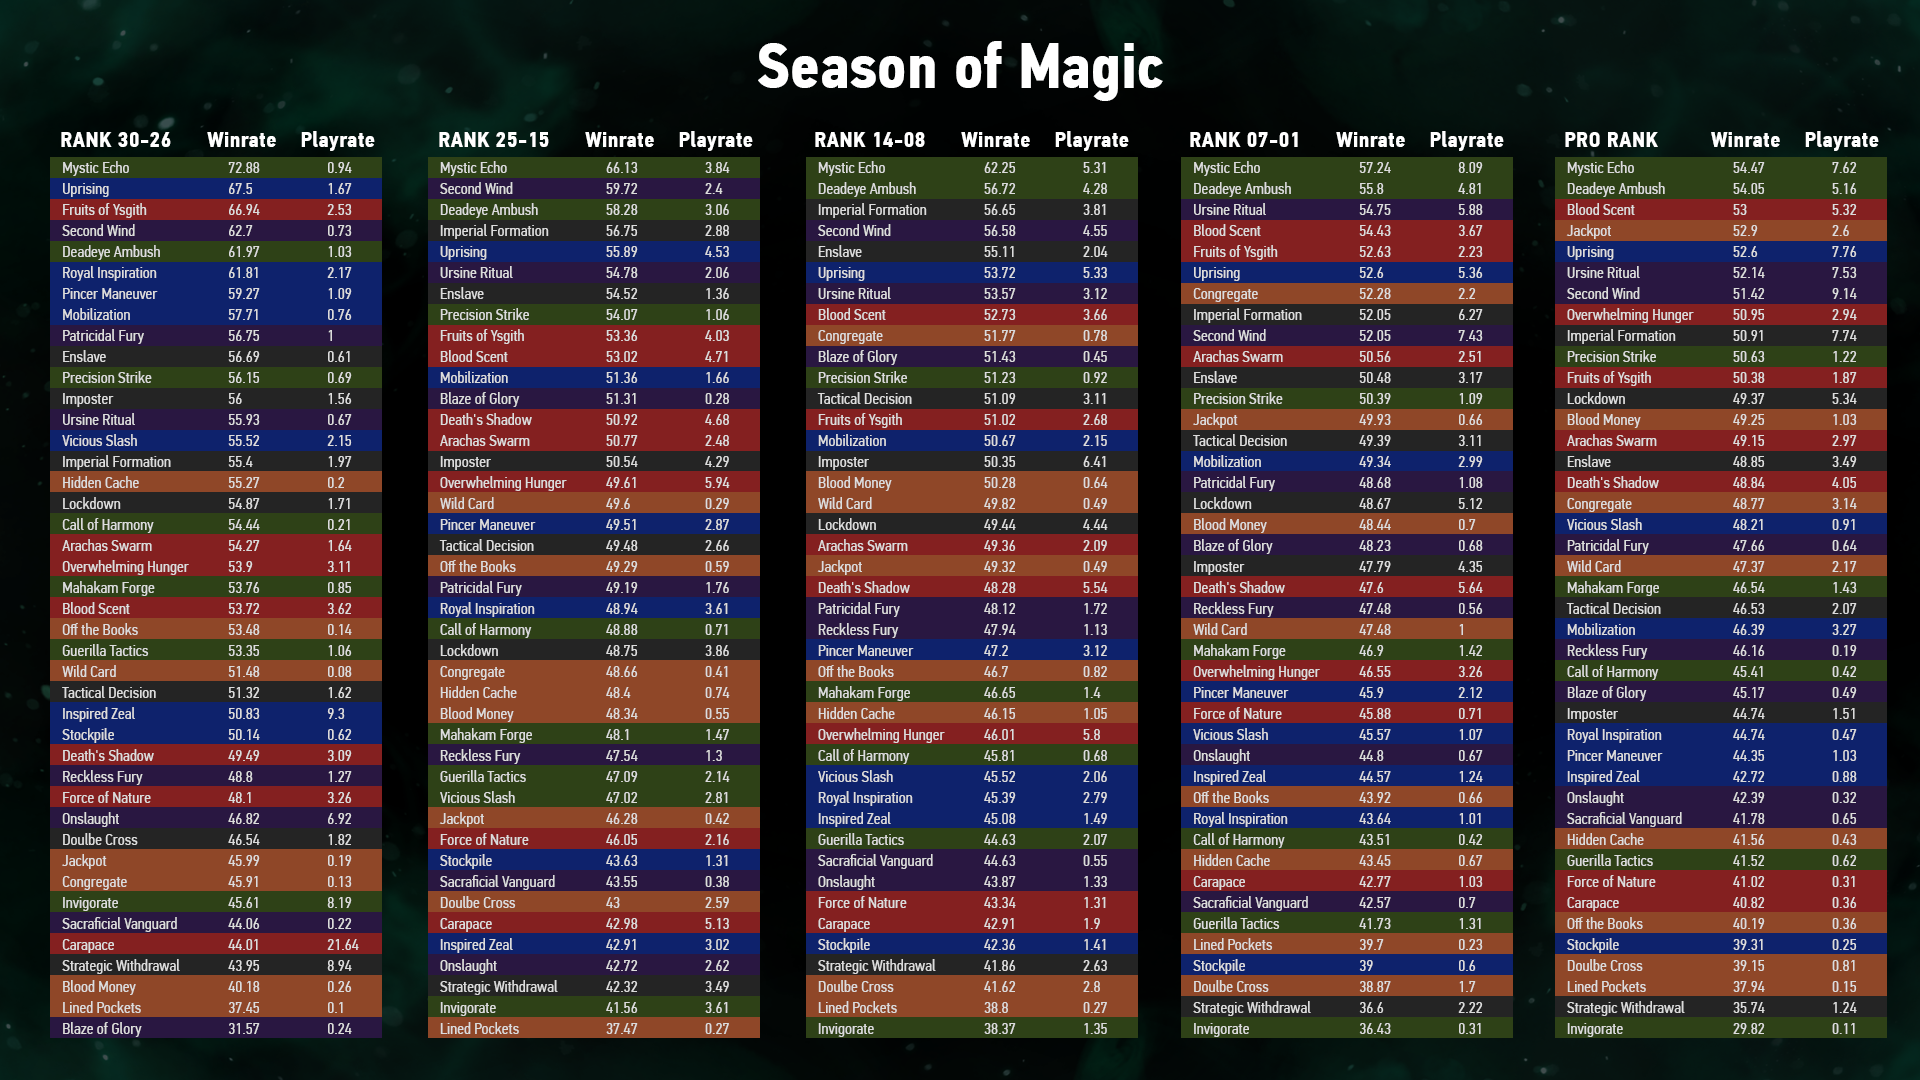 Season_Of_Magic_data.png